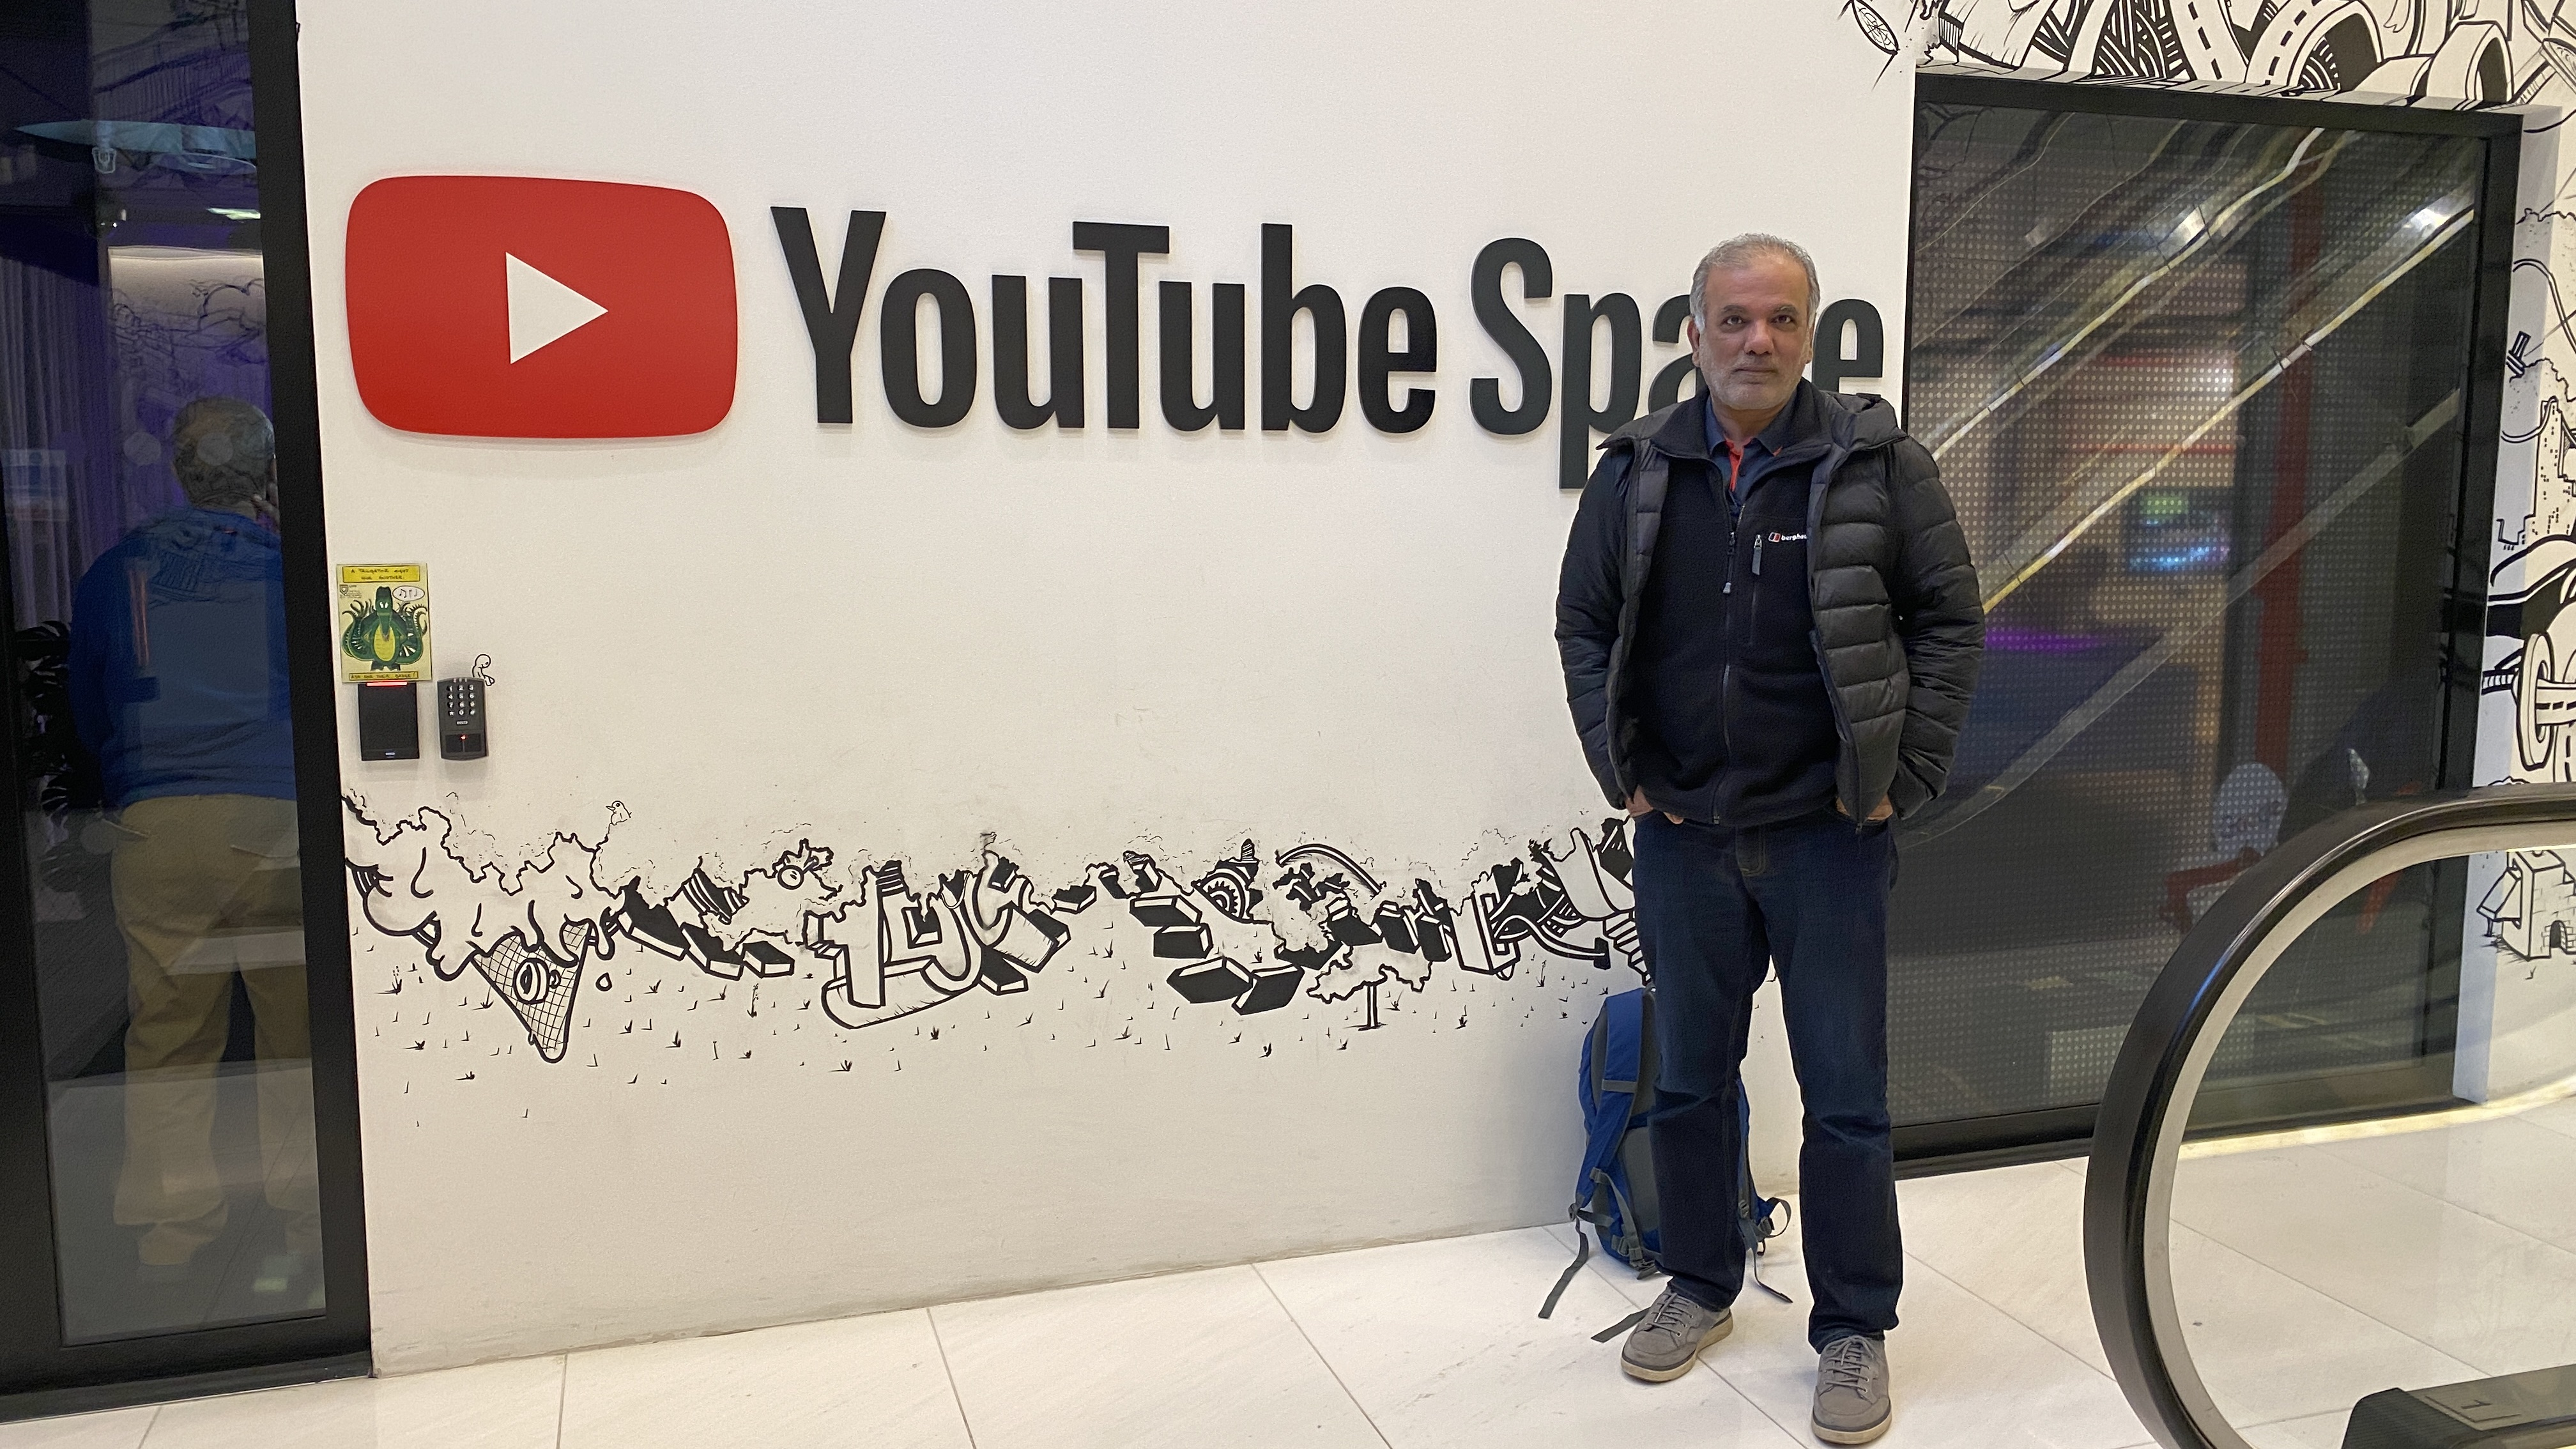 YouTube Space in London